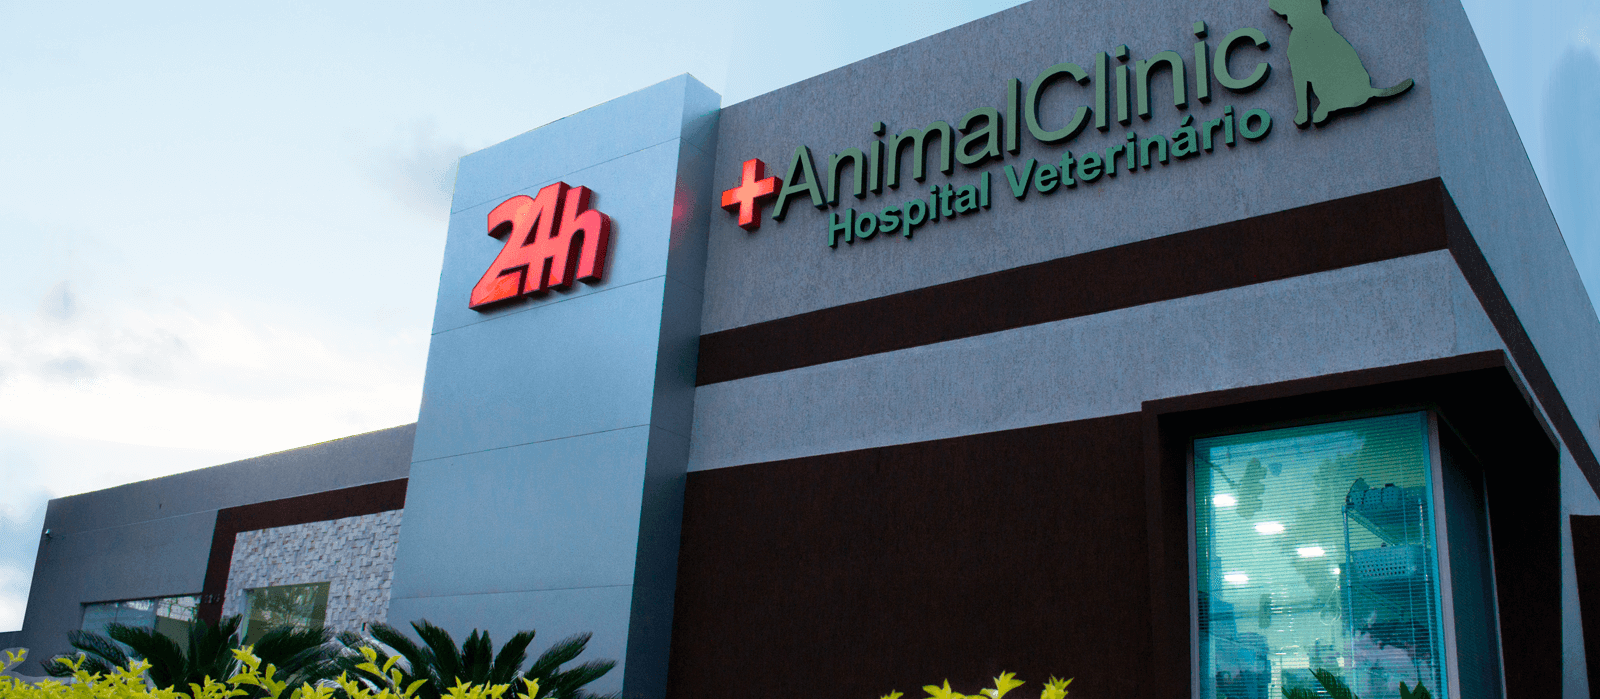 Animal Care 24h: o seu Hospital Veterinário